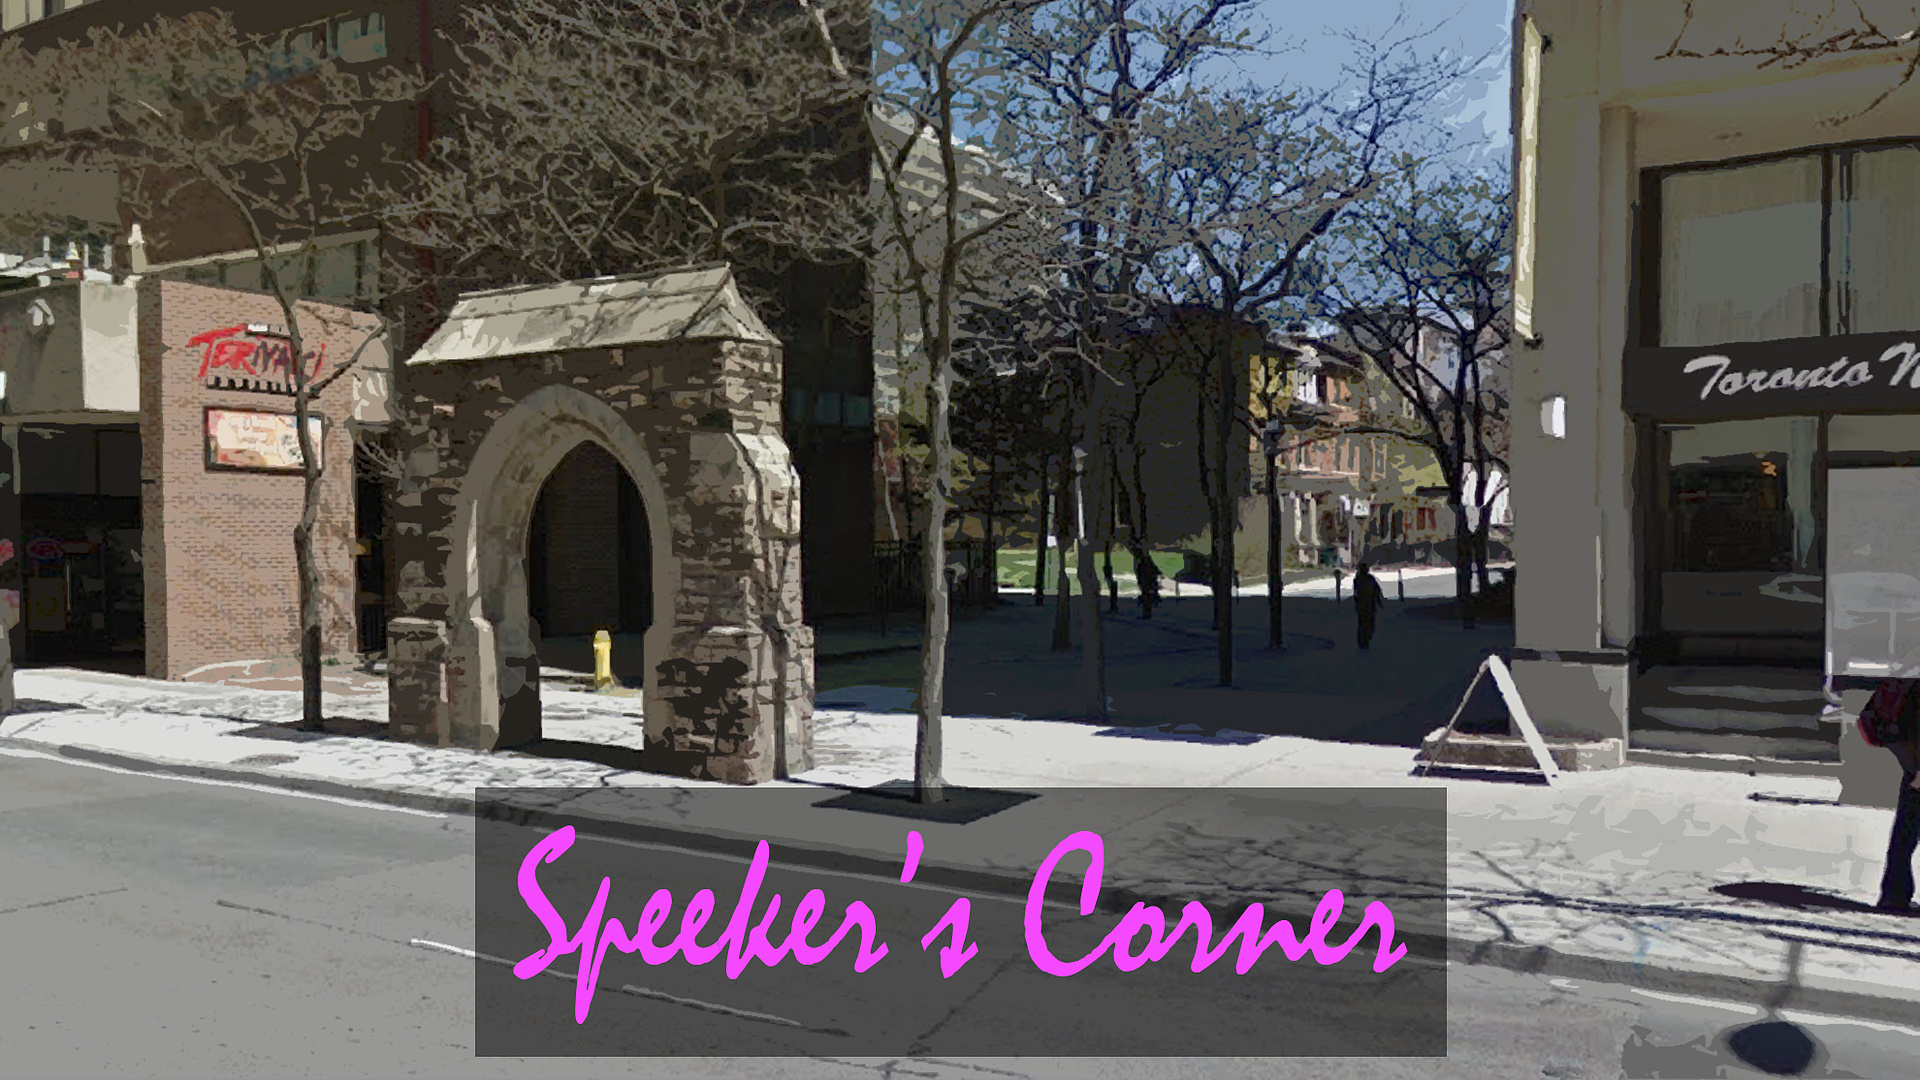 Friday: Speeker's Corner